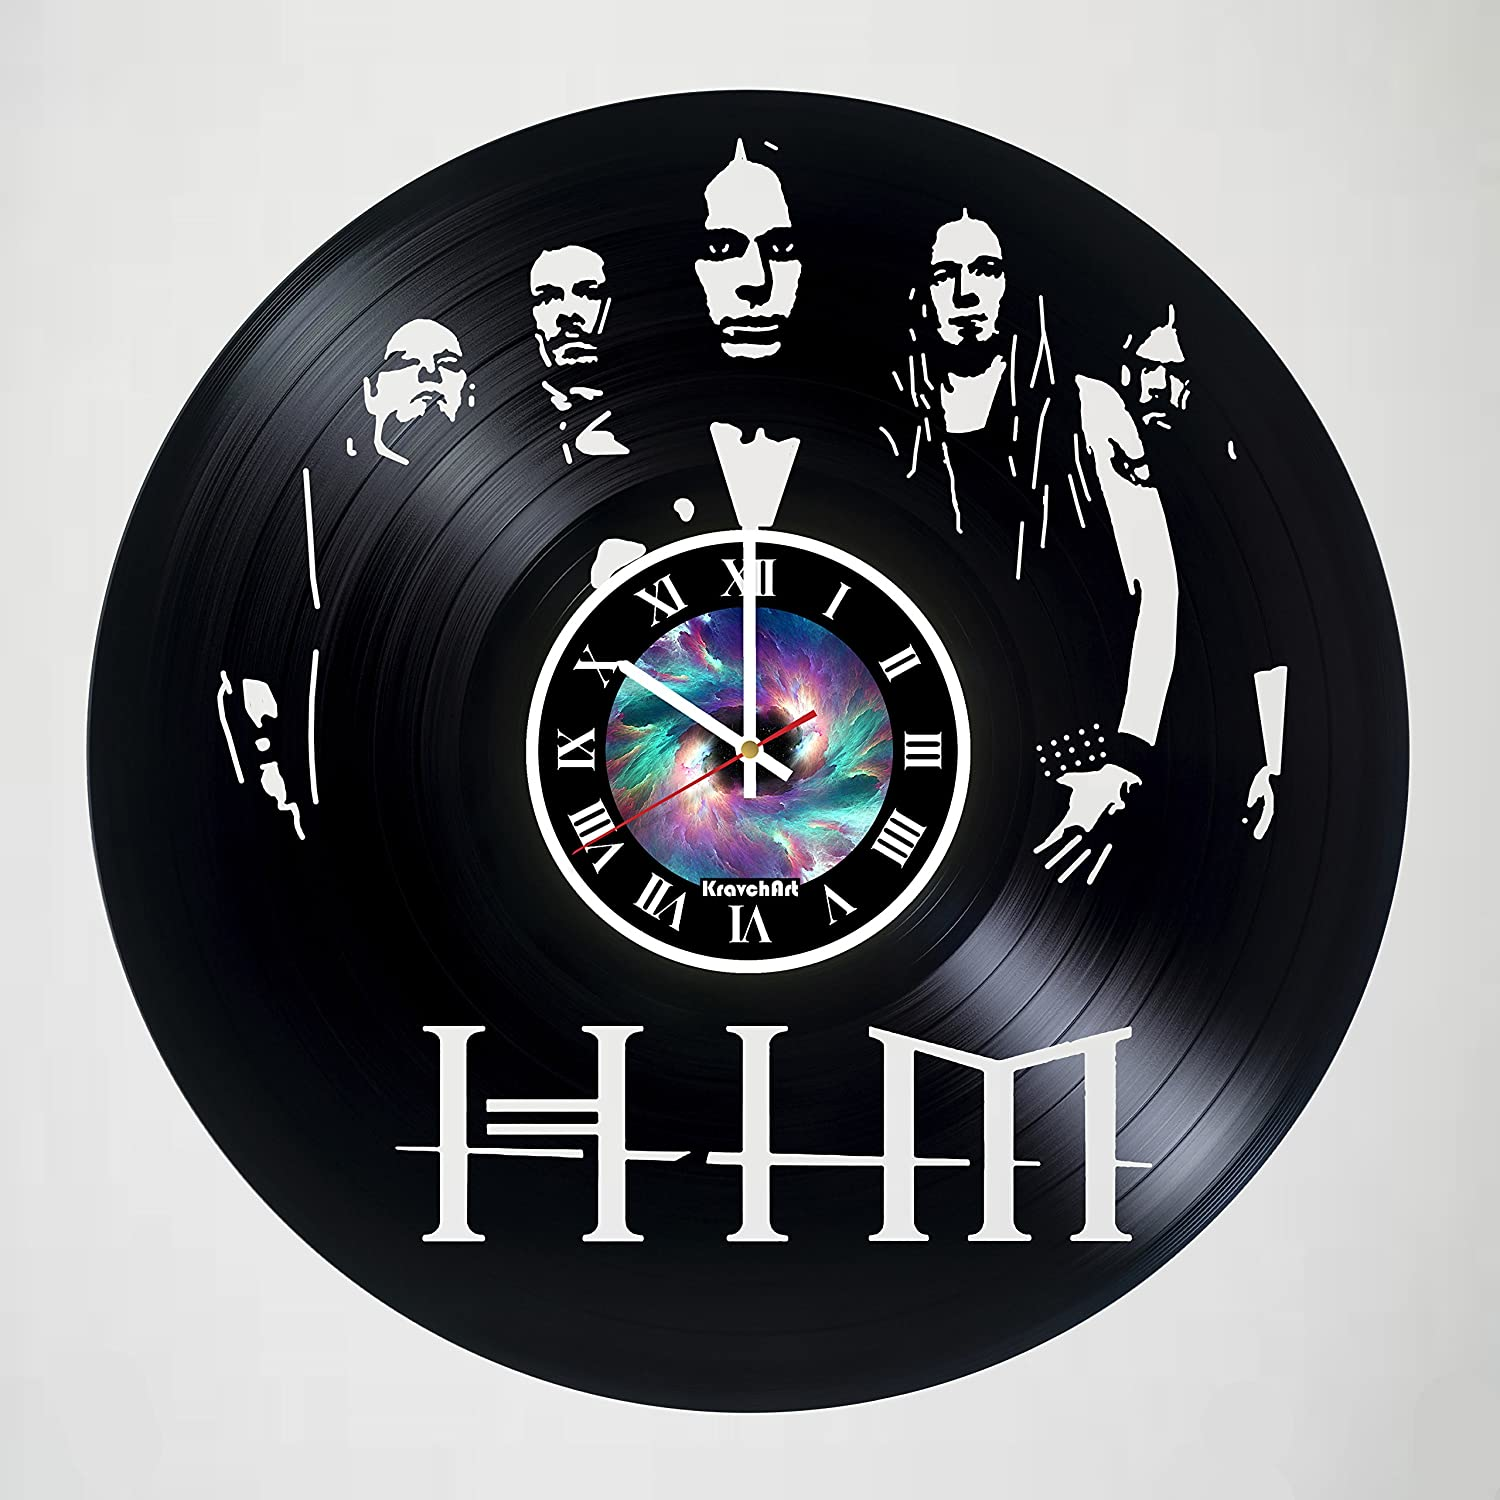 KravchArt H.I.M - Music Band Design Handmade Vinyl Record Wall Clock for Birthday Wedding Anniversary Valentine's Mother's Ideas for Men and Women him and her